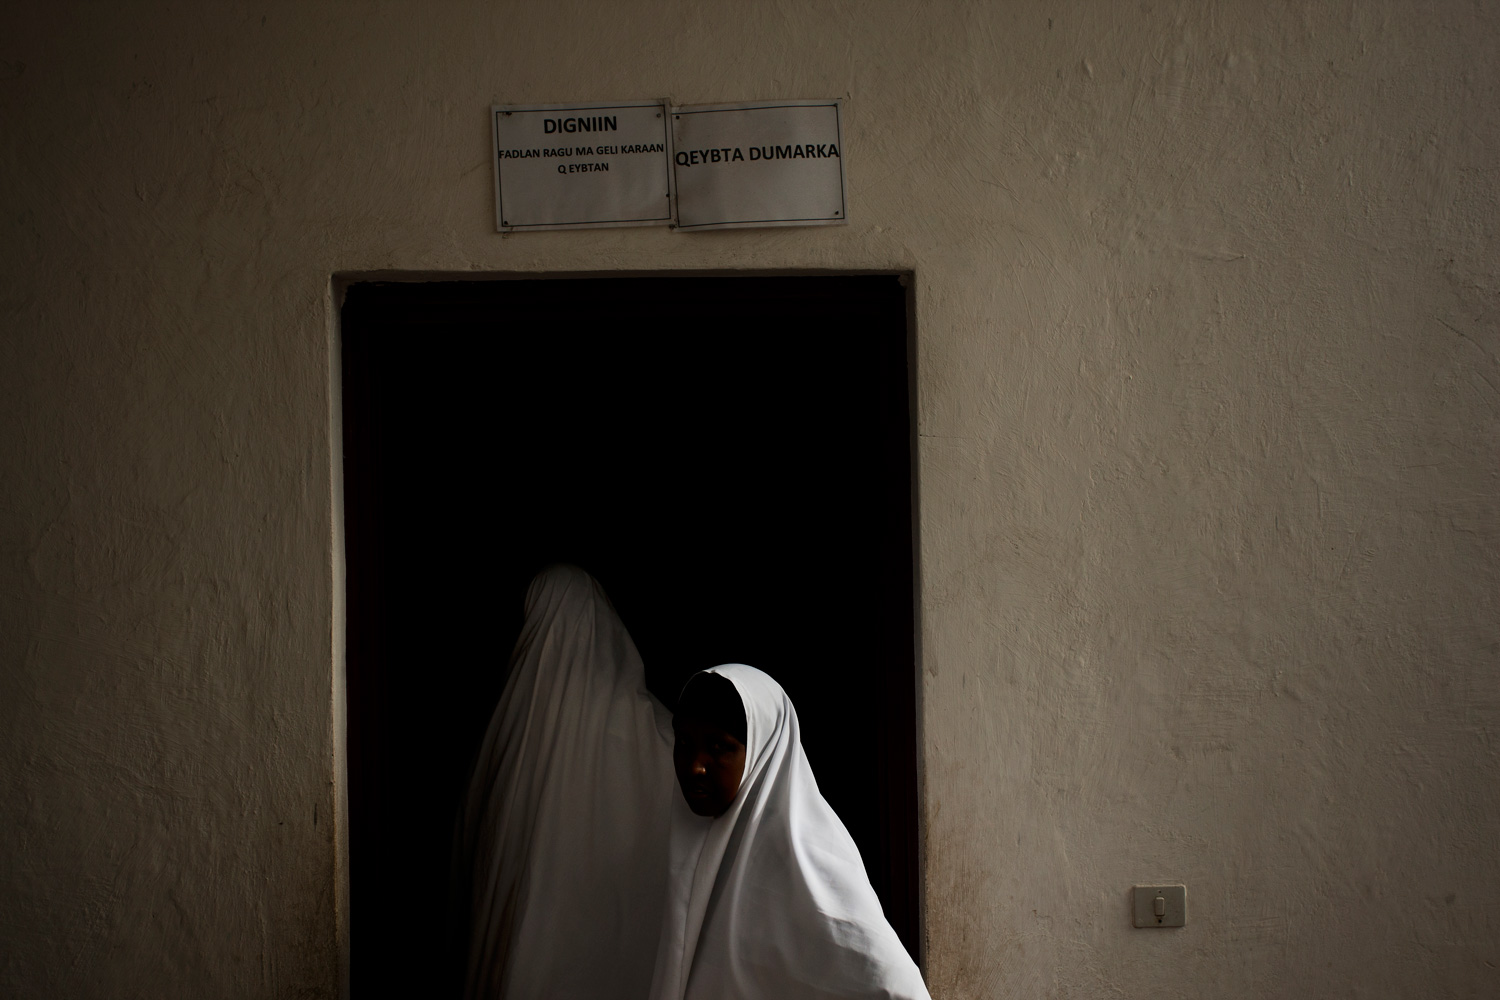 The following photos were taken in June 2012 Women enter a hospital in Mogadishu, which has become more active since Al-Shabaab was pushed out of the city.